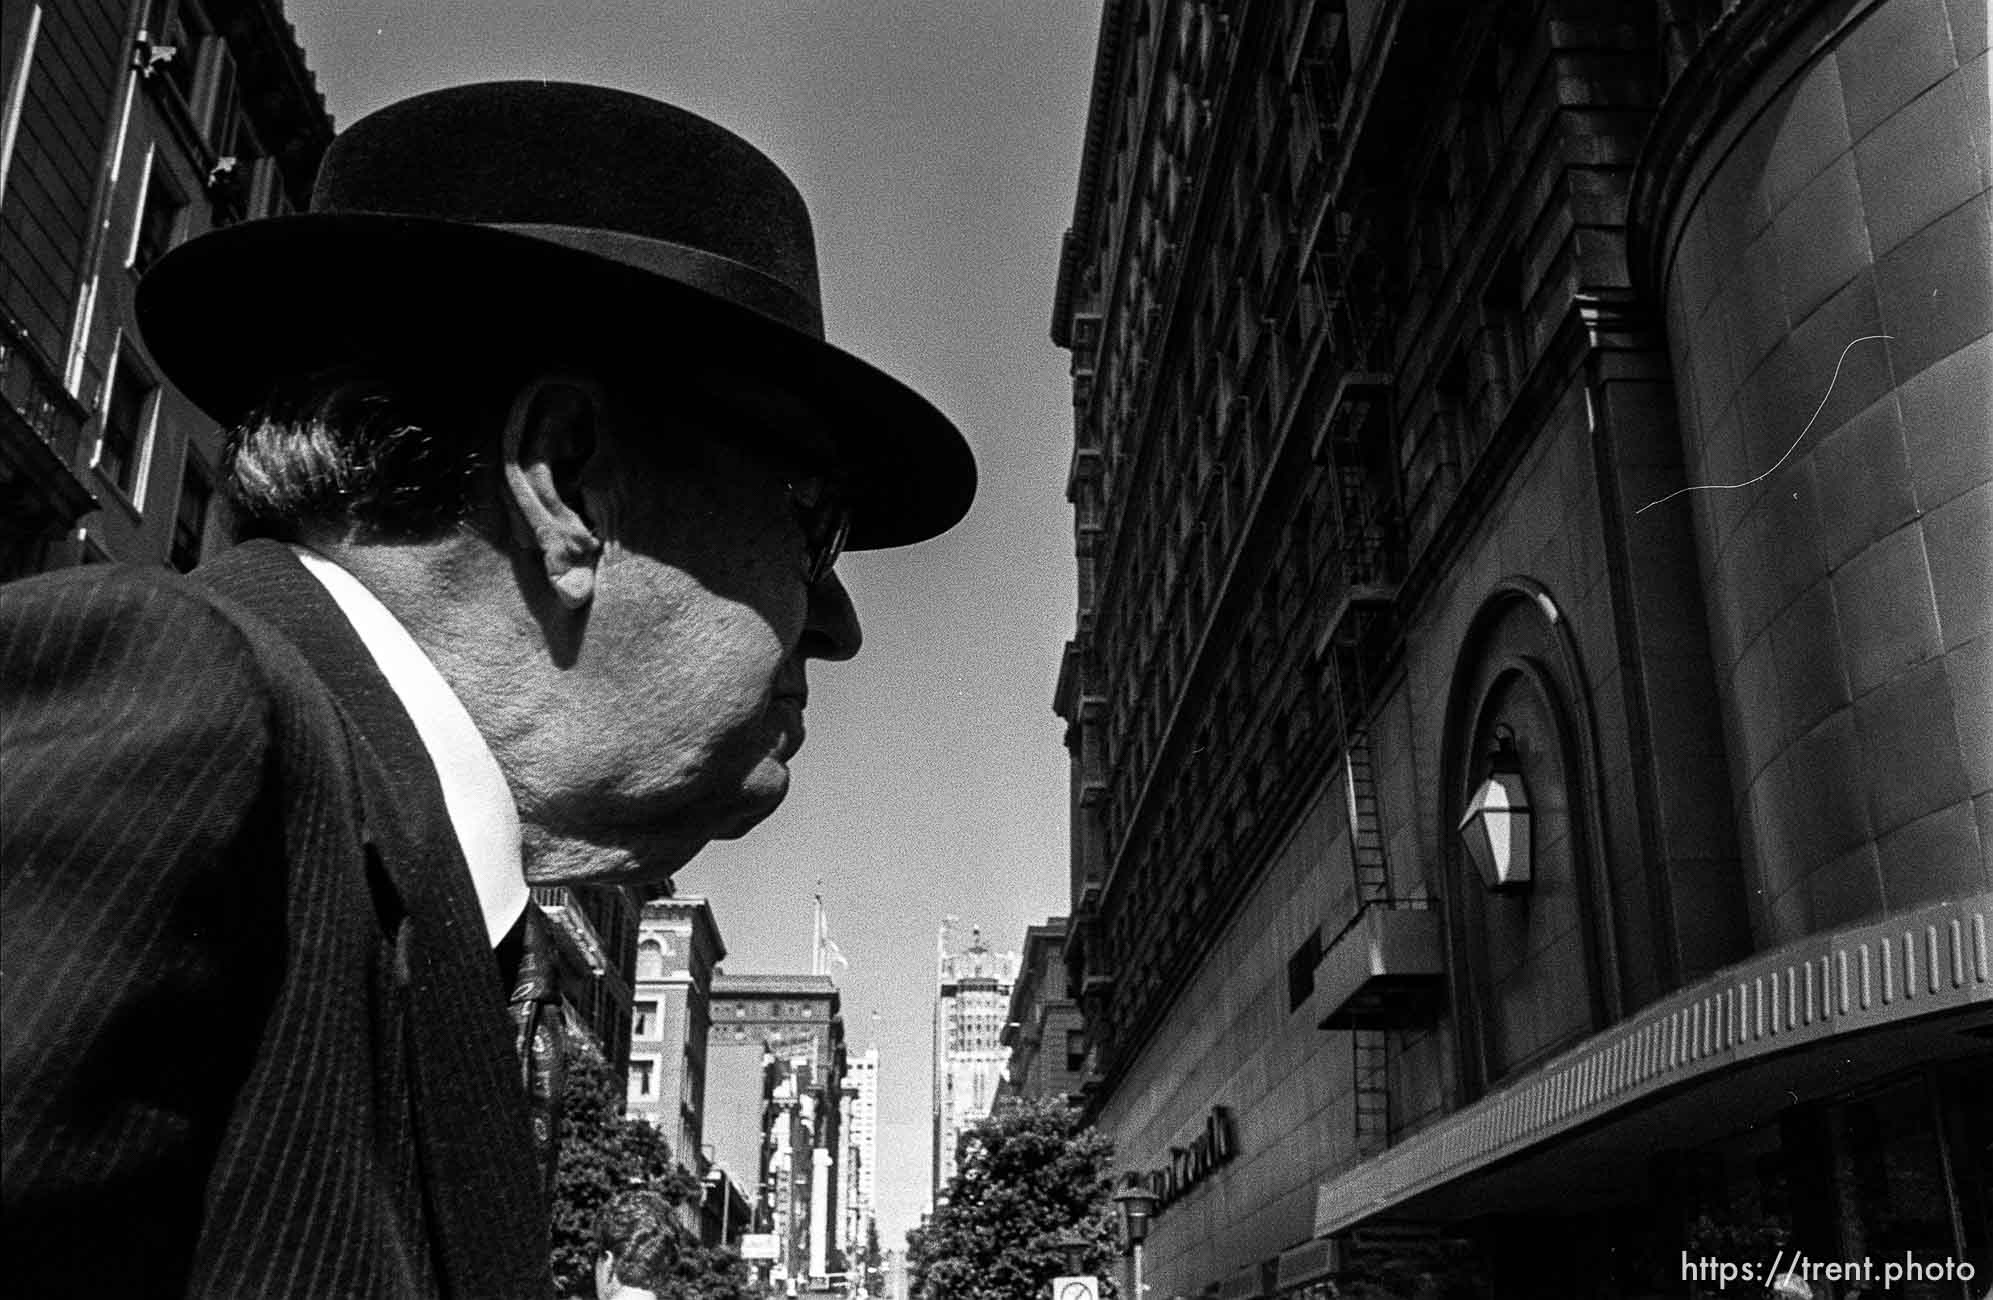 Man with hat. Leica hip shots on the street.